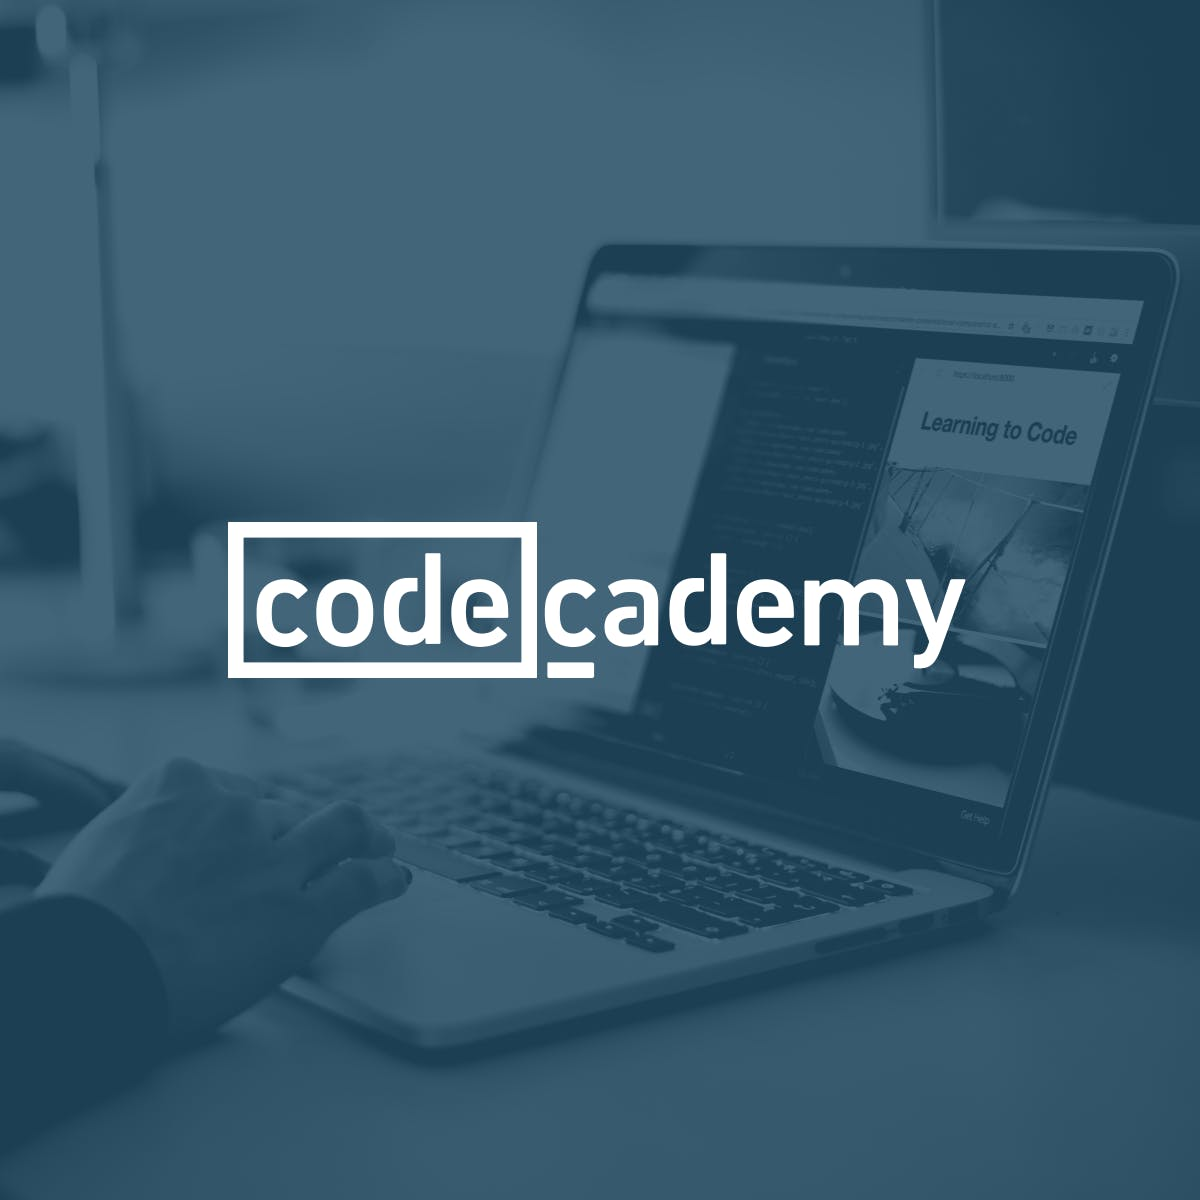 Learn to Code With Codeacademy